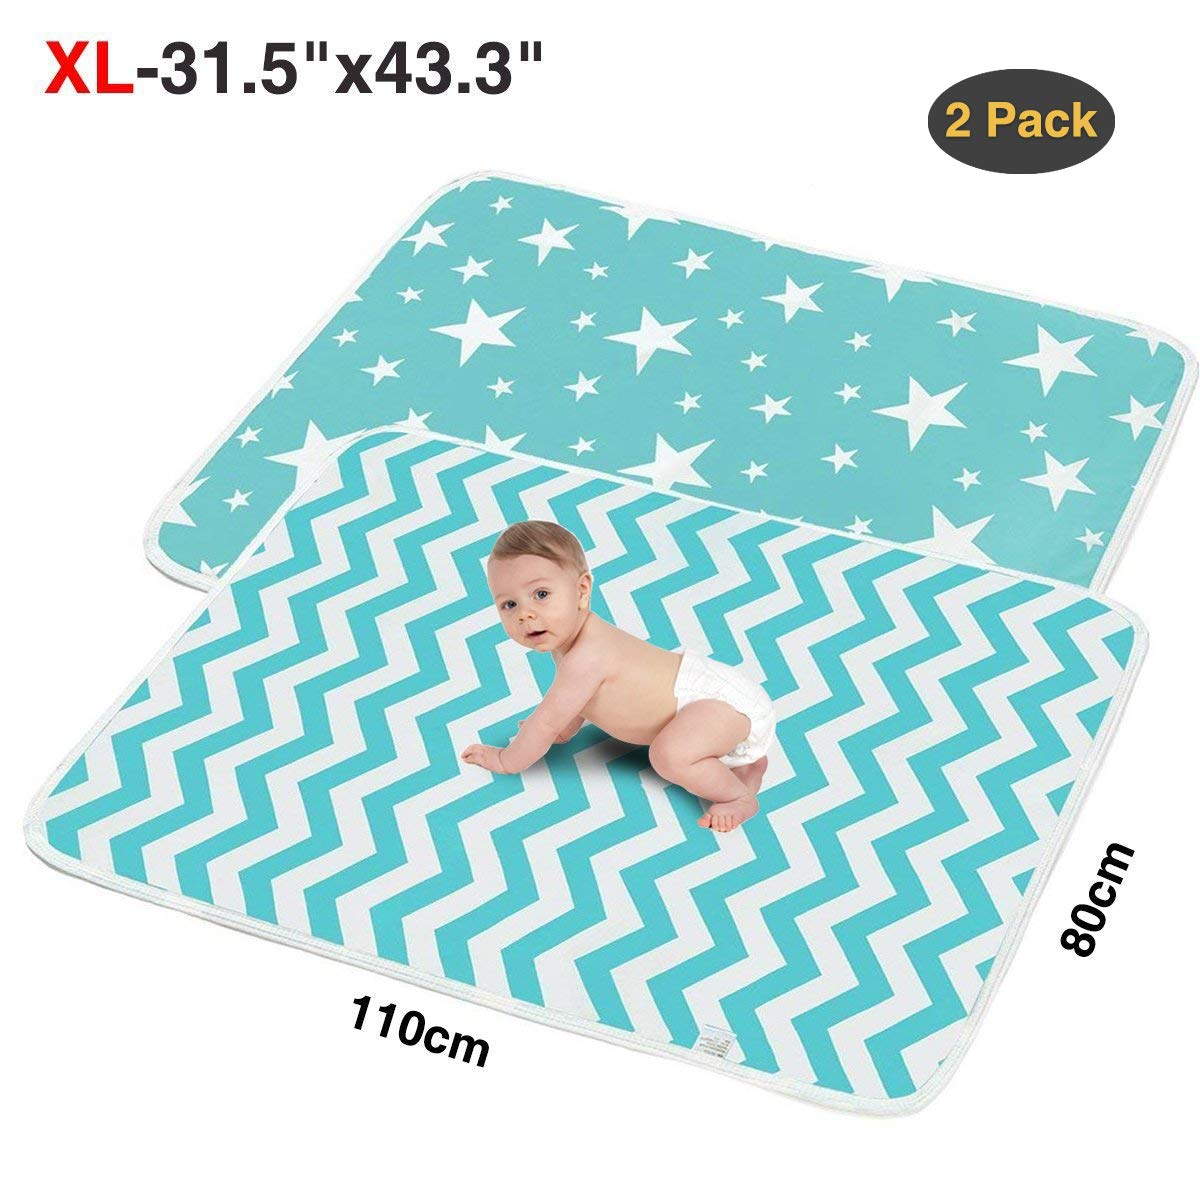 2 Pack XL Portable Baby Diaper Changing Pads,Waterproof Thick,Soft and Absorbent Baby Crib Sheet Cover,Ideal for Changing Table/Station,Crib,80x110cm/31.5